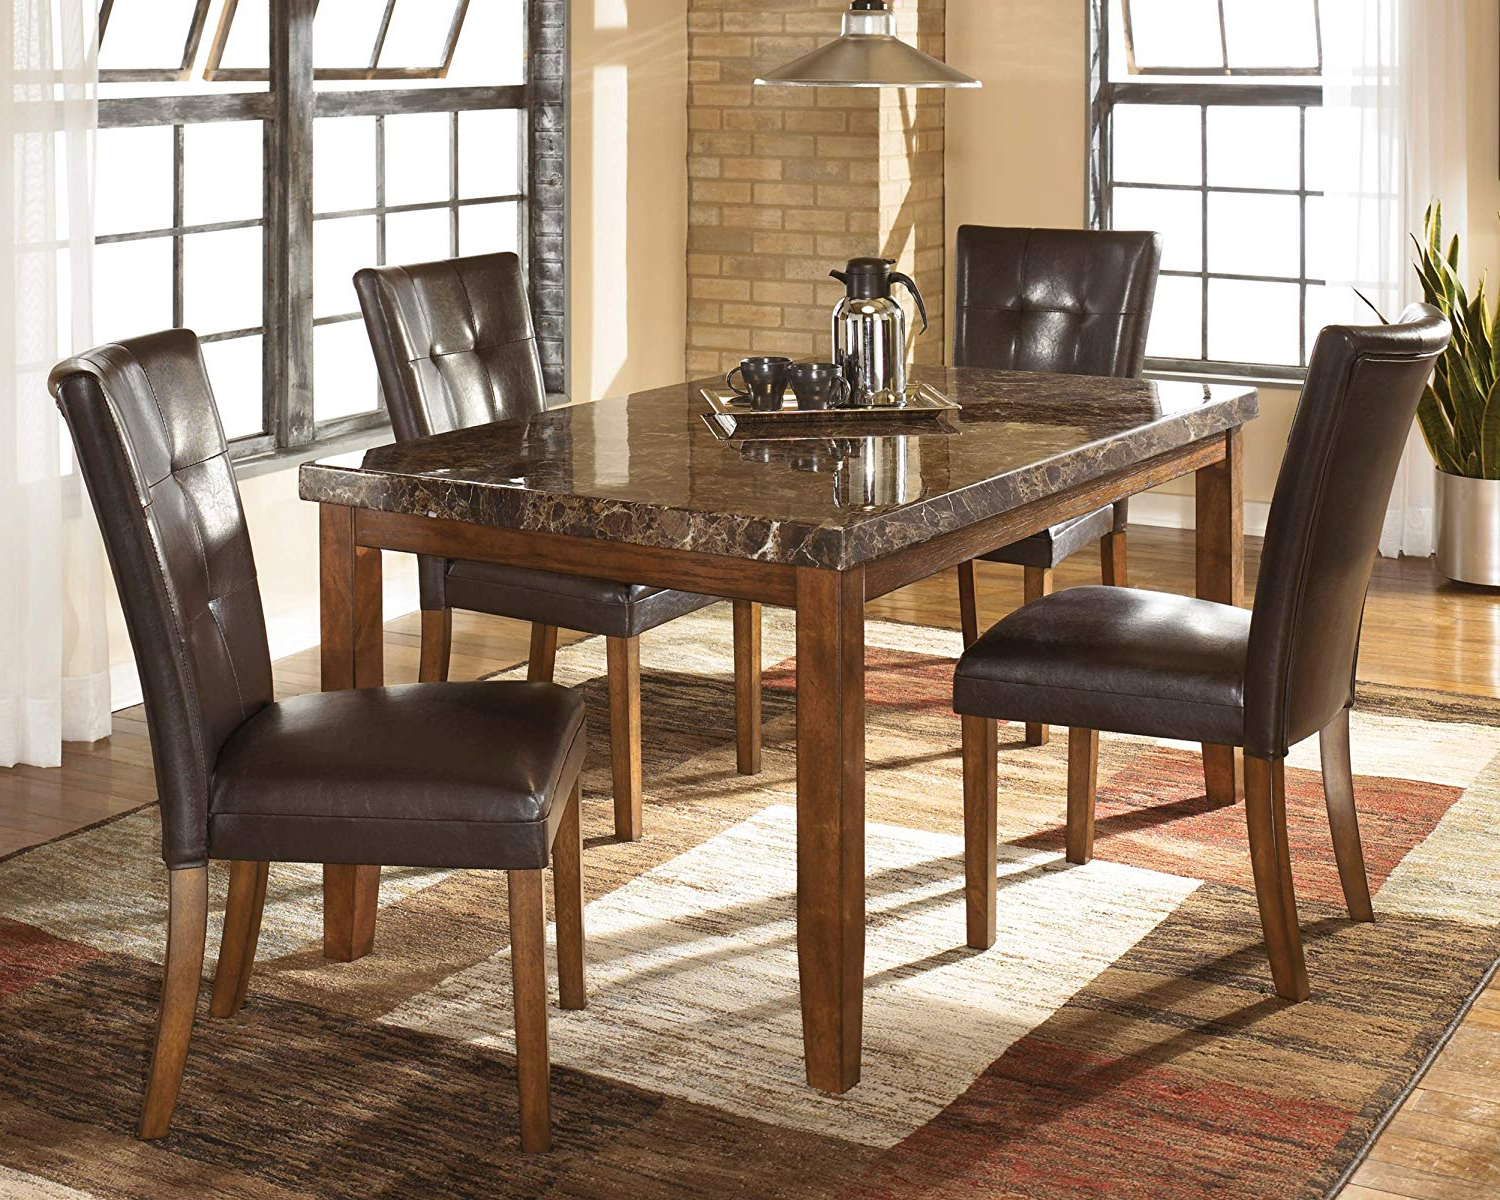 Anette 3 Piece Counter Height Dining Sets With Preferred Amazon – Ashley Furniture Signature Design – Lacey Dining Room (View 10 of 25)